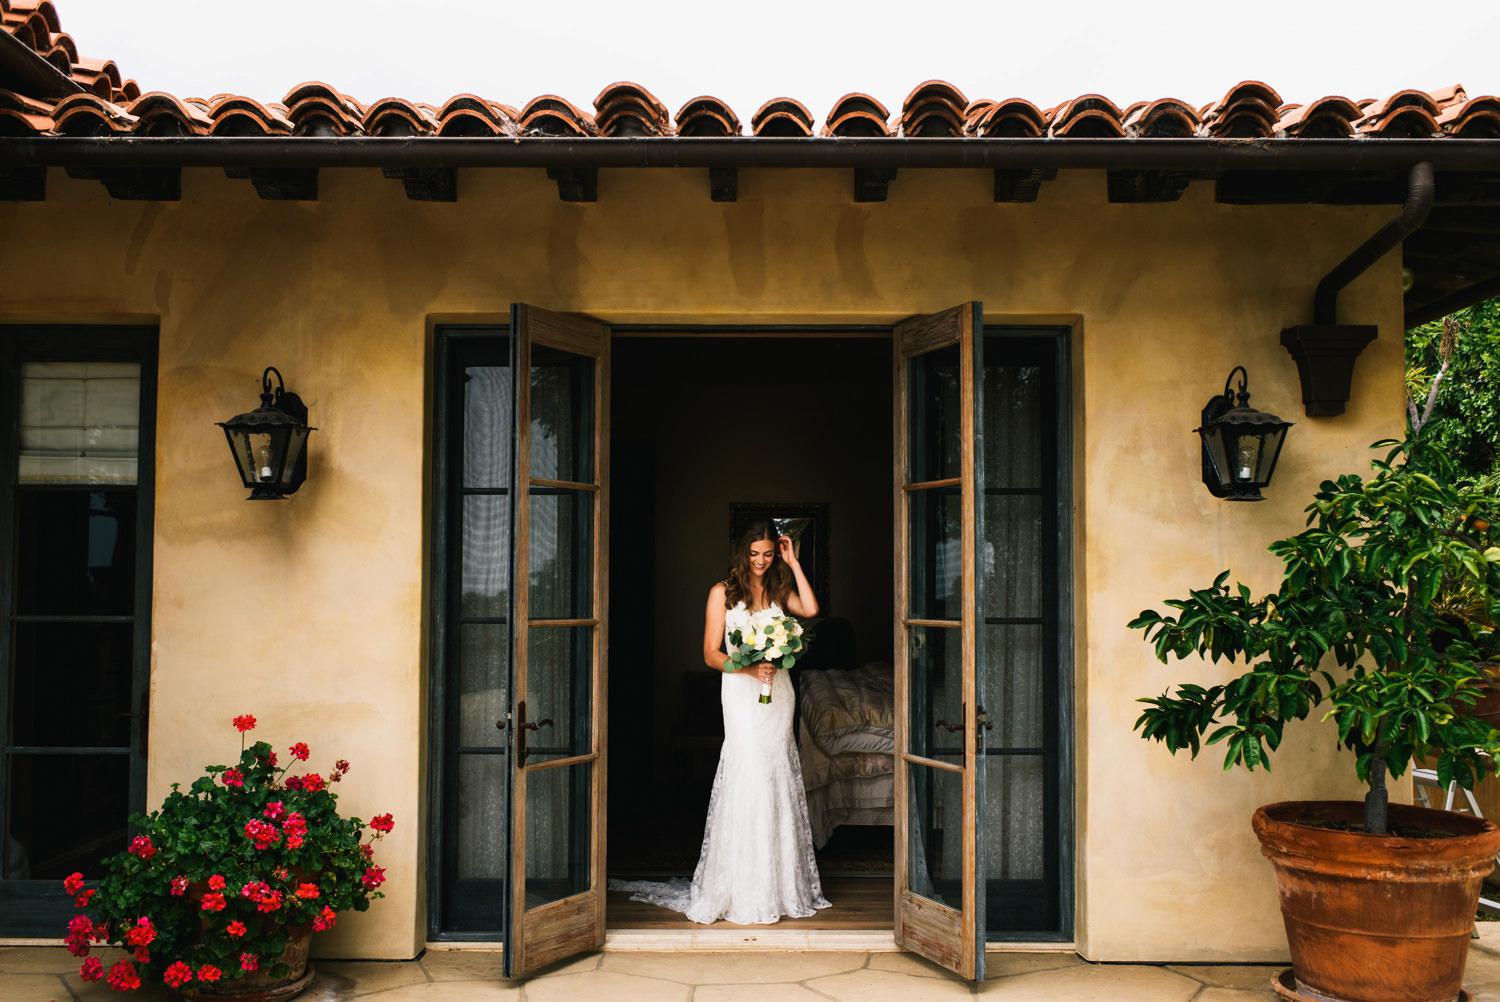 montecito bride gets ready in her childhood bedroom - montecito wedding photography